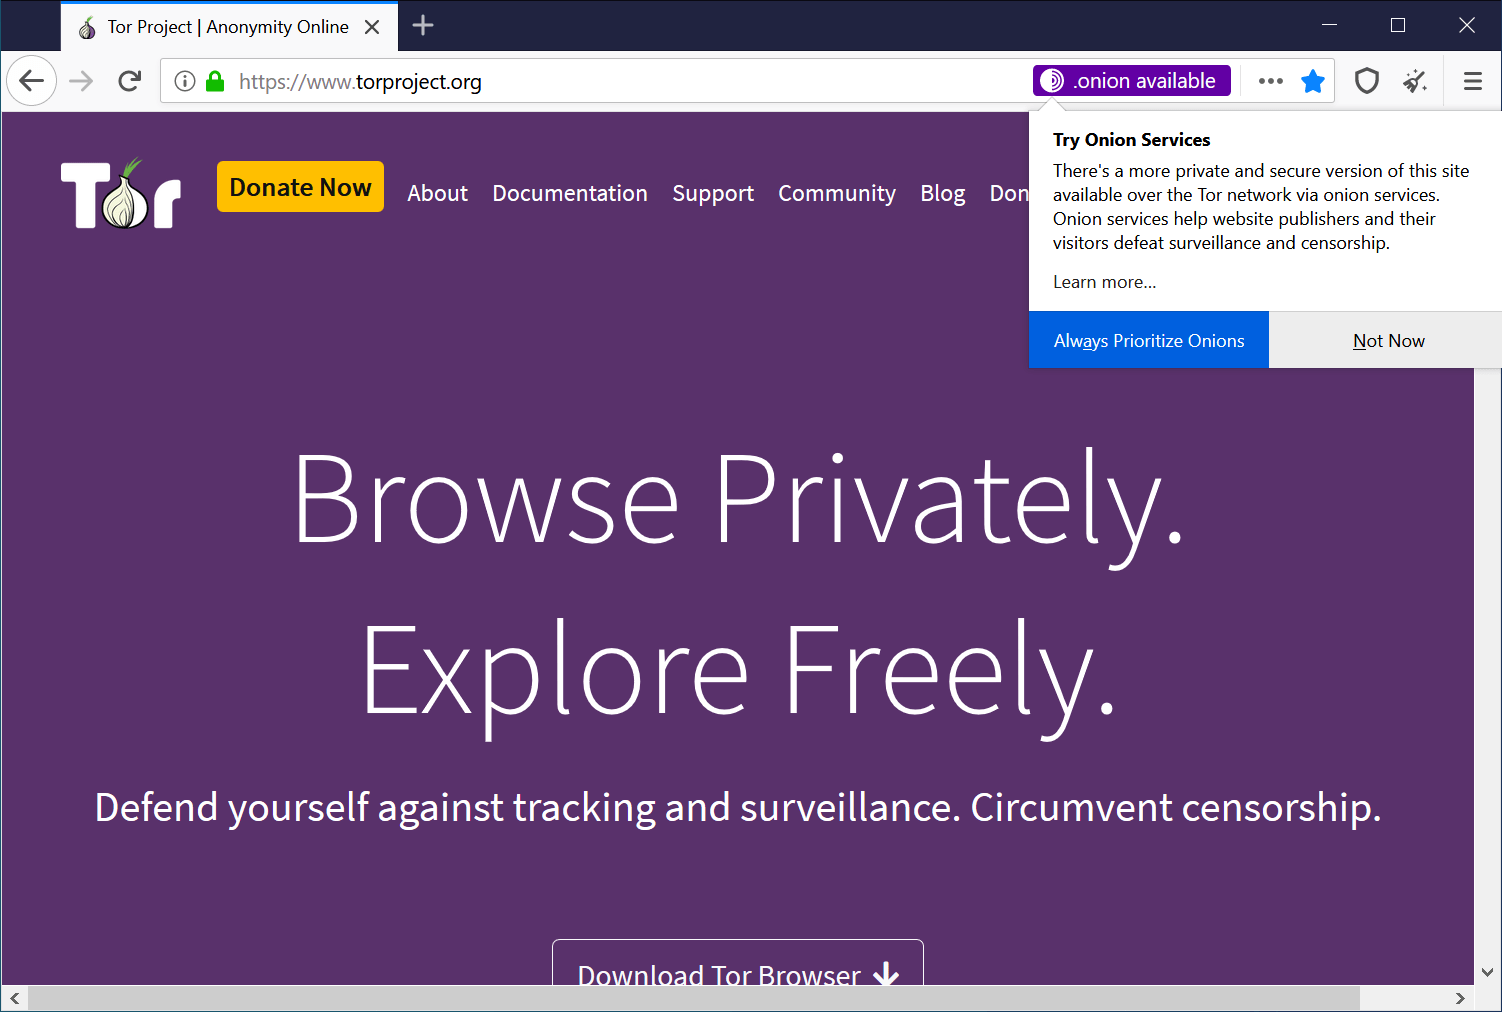 Tor Browser for Privacy